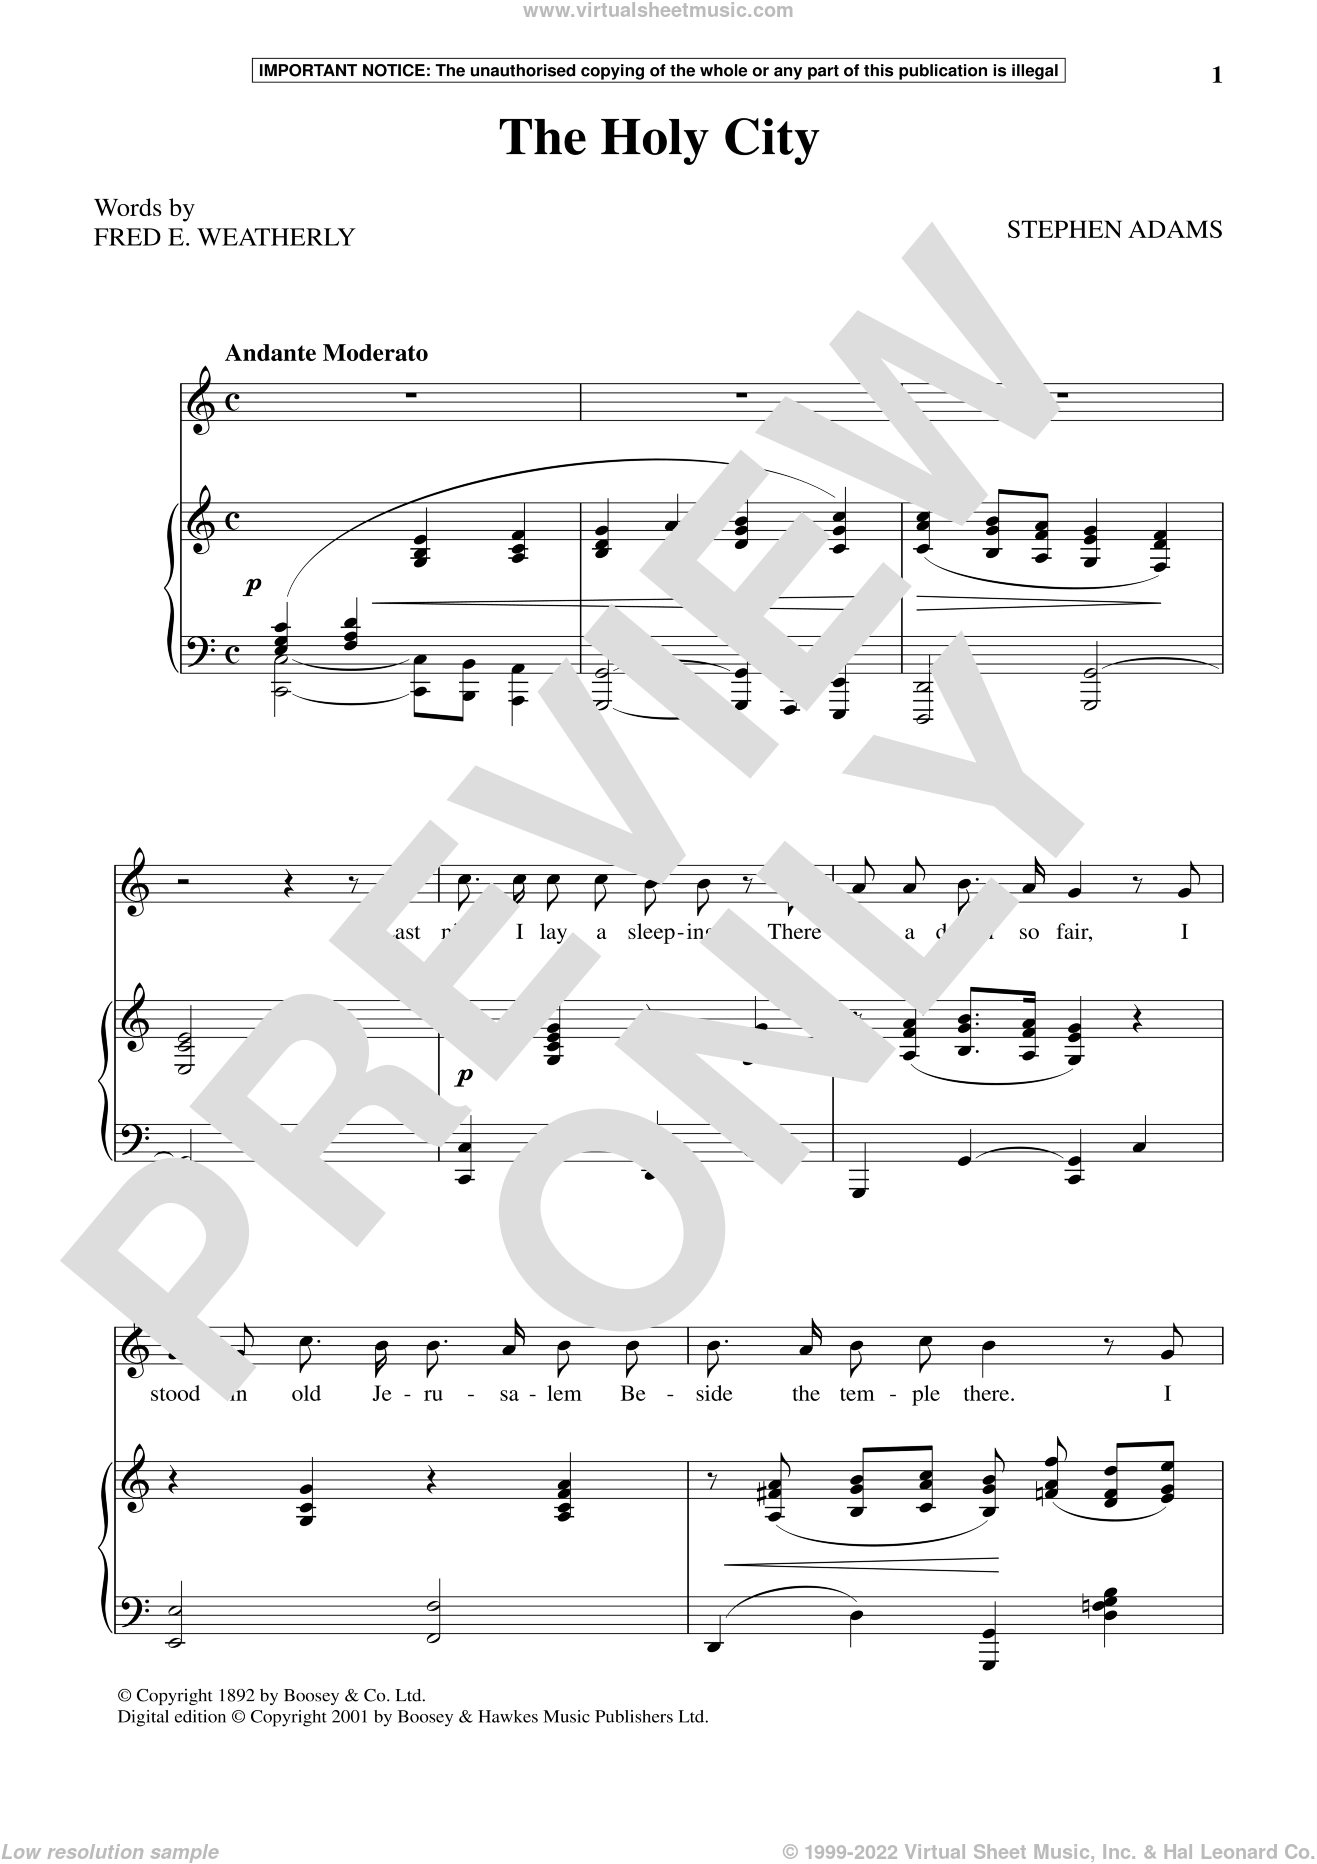 The Holy City sheet music for voice and piano by Stephen Adams, classical score, intermediate skill level